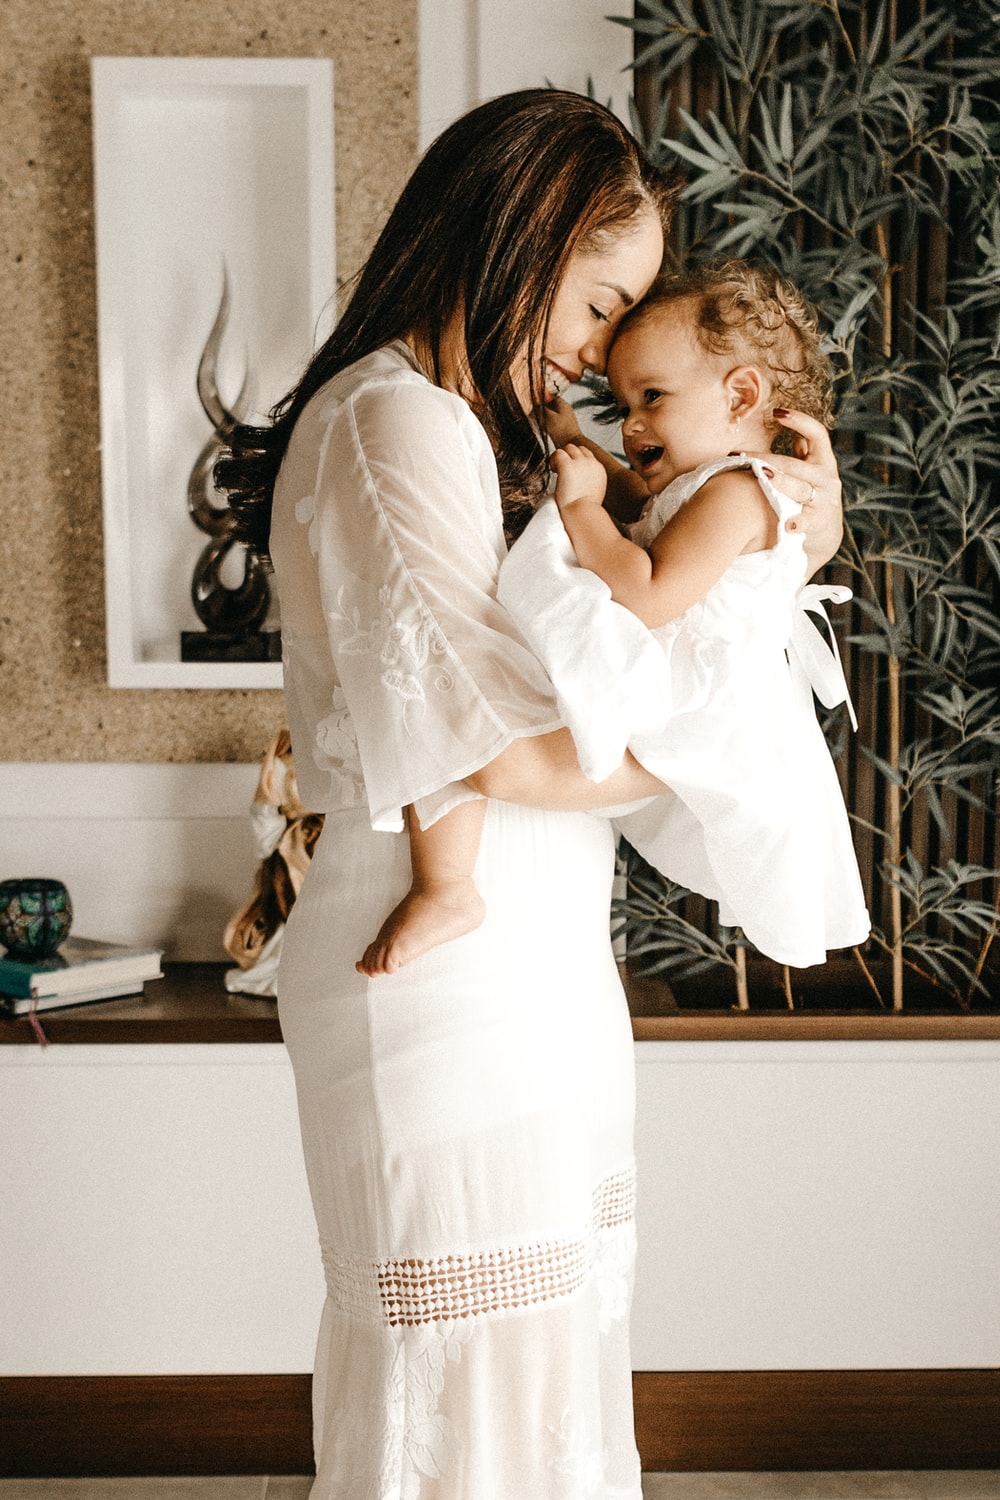 smiling woman in white dress holding toddler